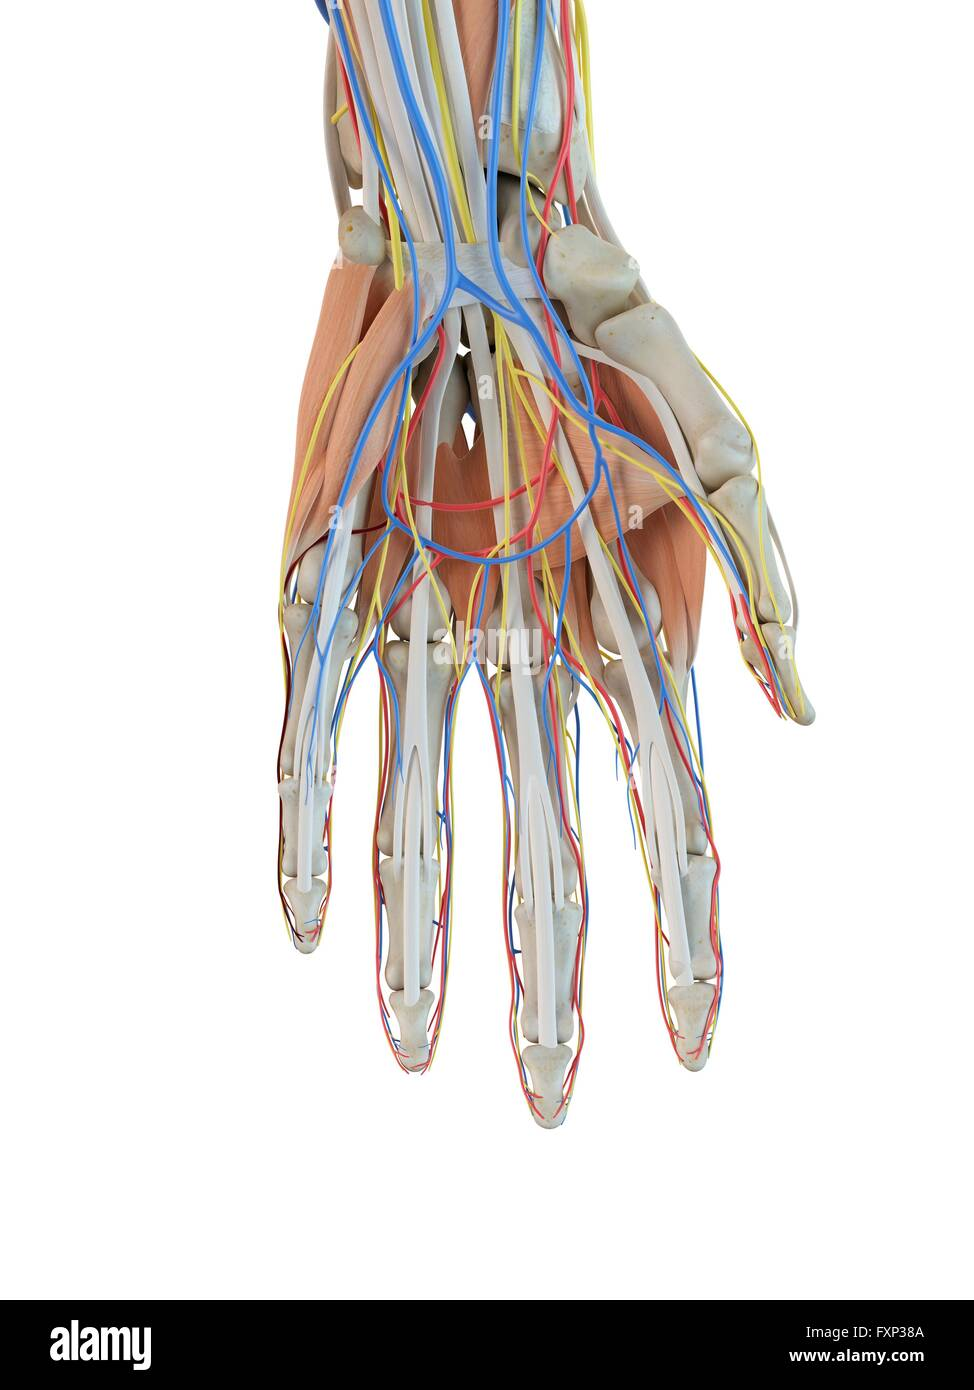 Human Hand Nerves Stock Photos Human Hand Nerves Stock Images Alamy